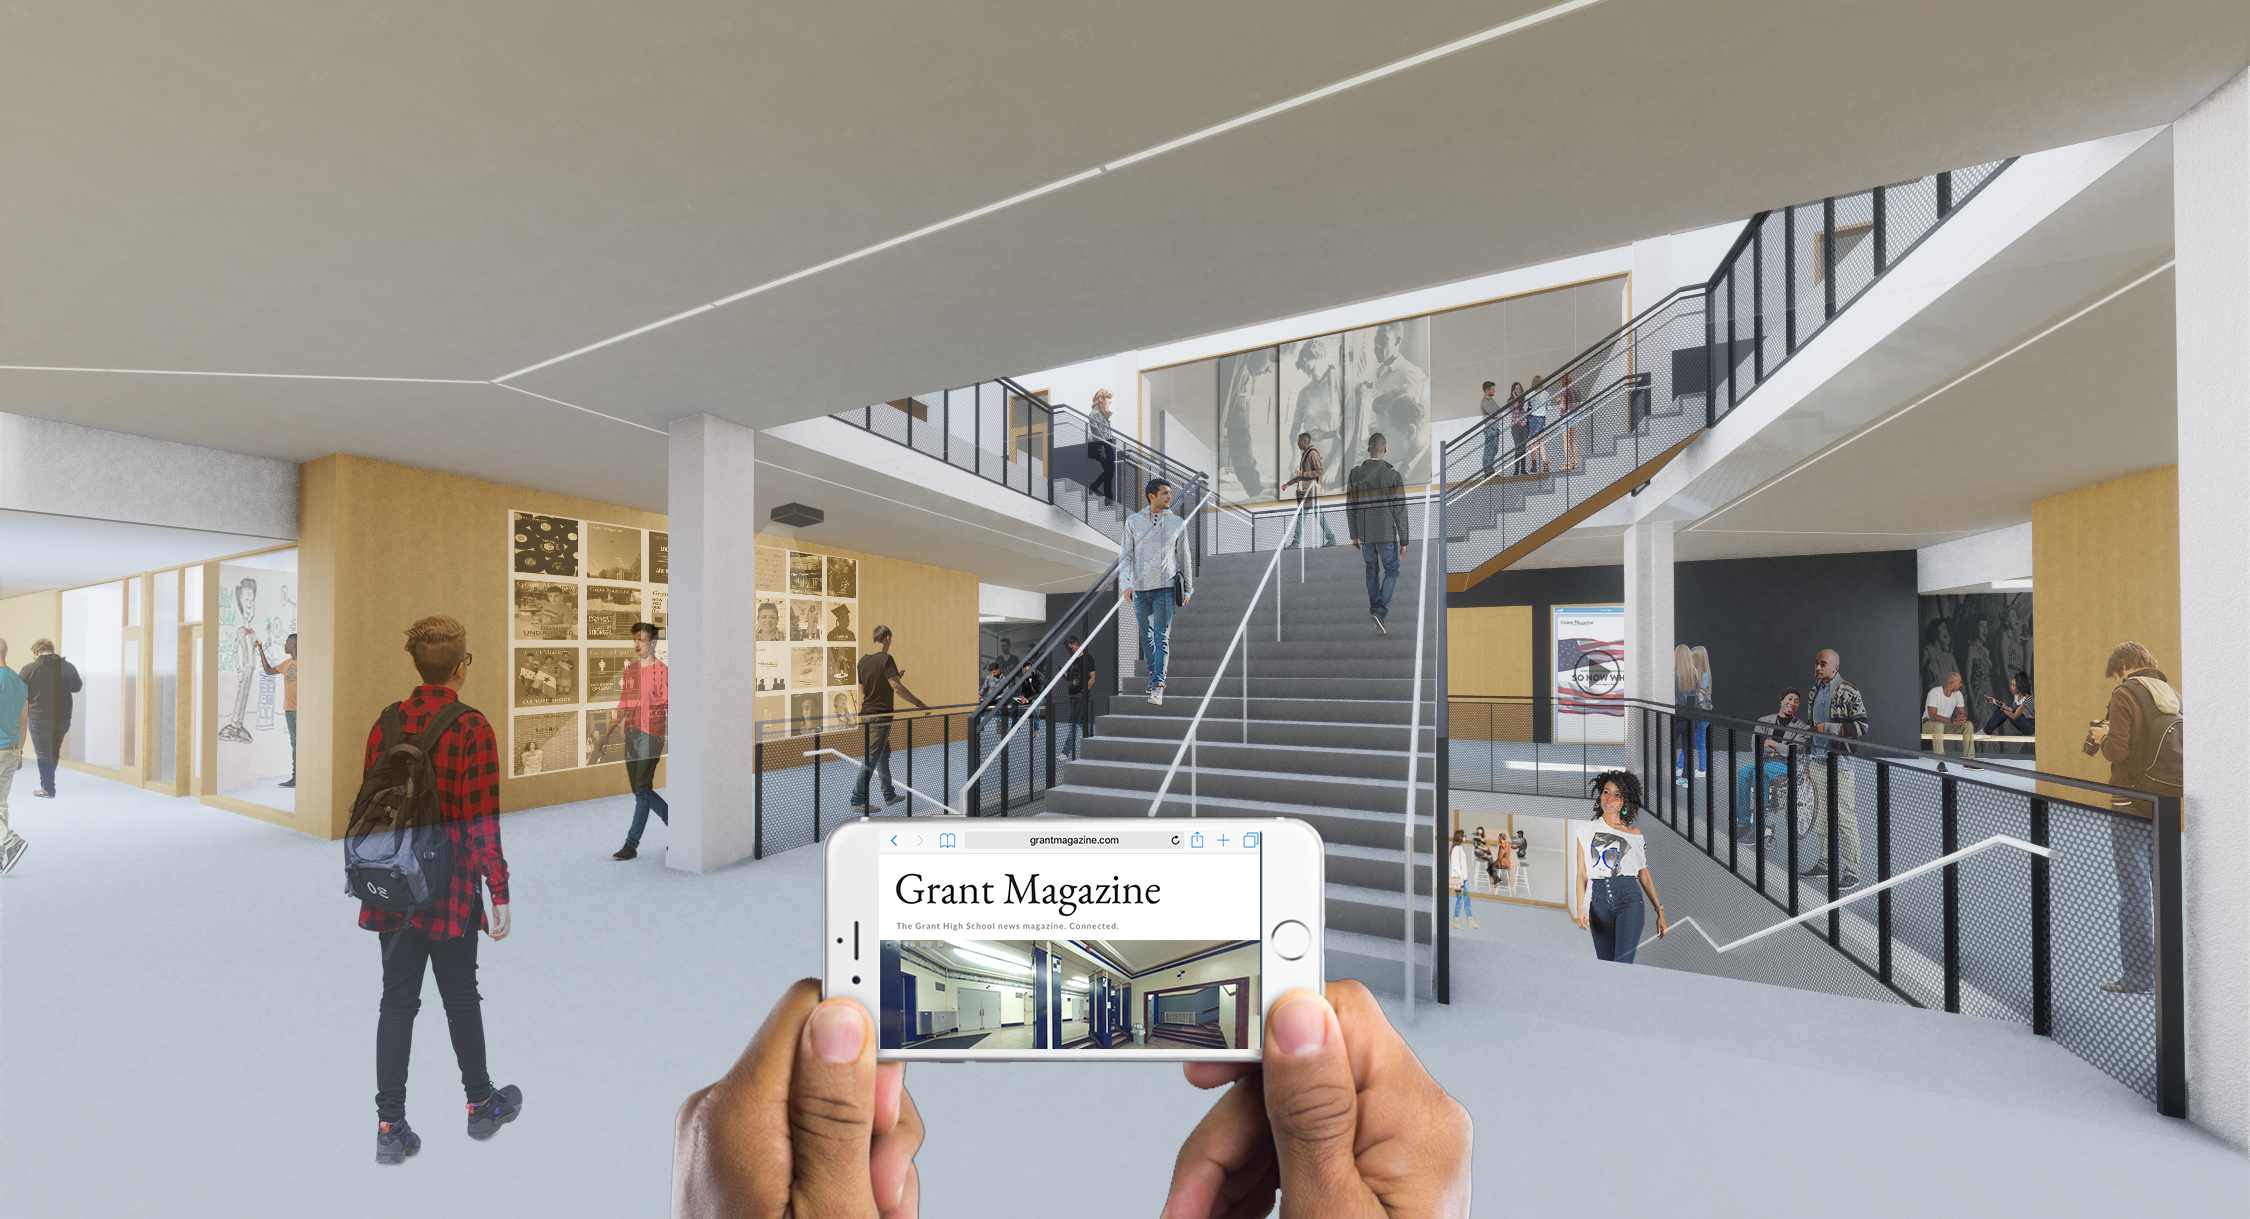 A modern school proposal showing an integrated digital experience with augmented reality capacity, interactive displays, rear projected glass, and a unique school app.